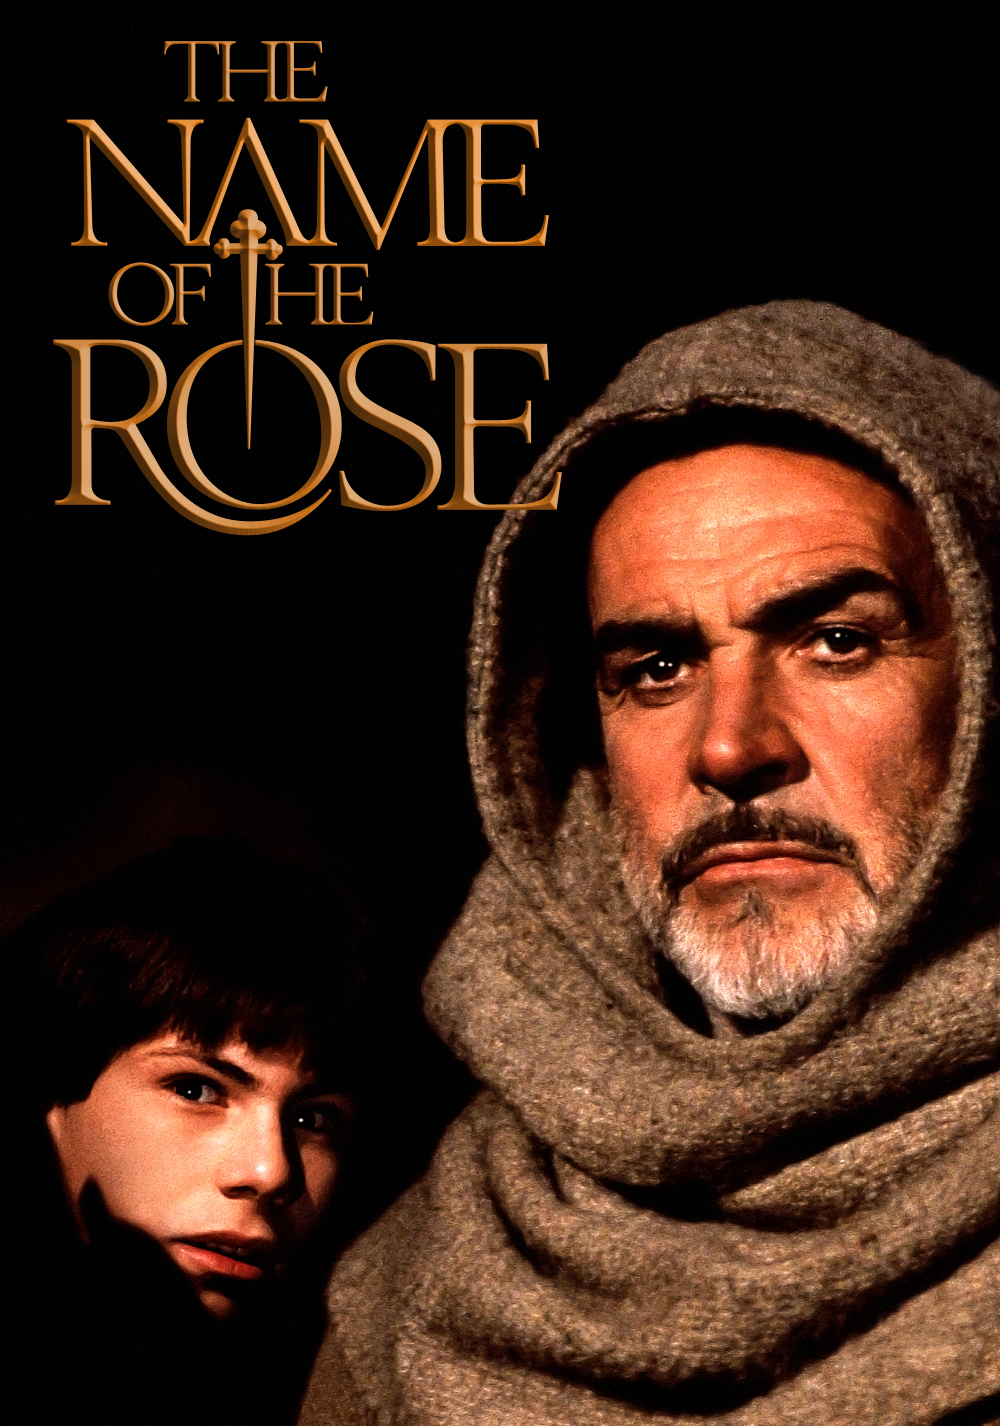 the-name-of-the-rose-543d57721a097